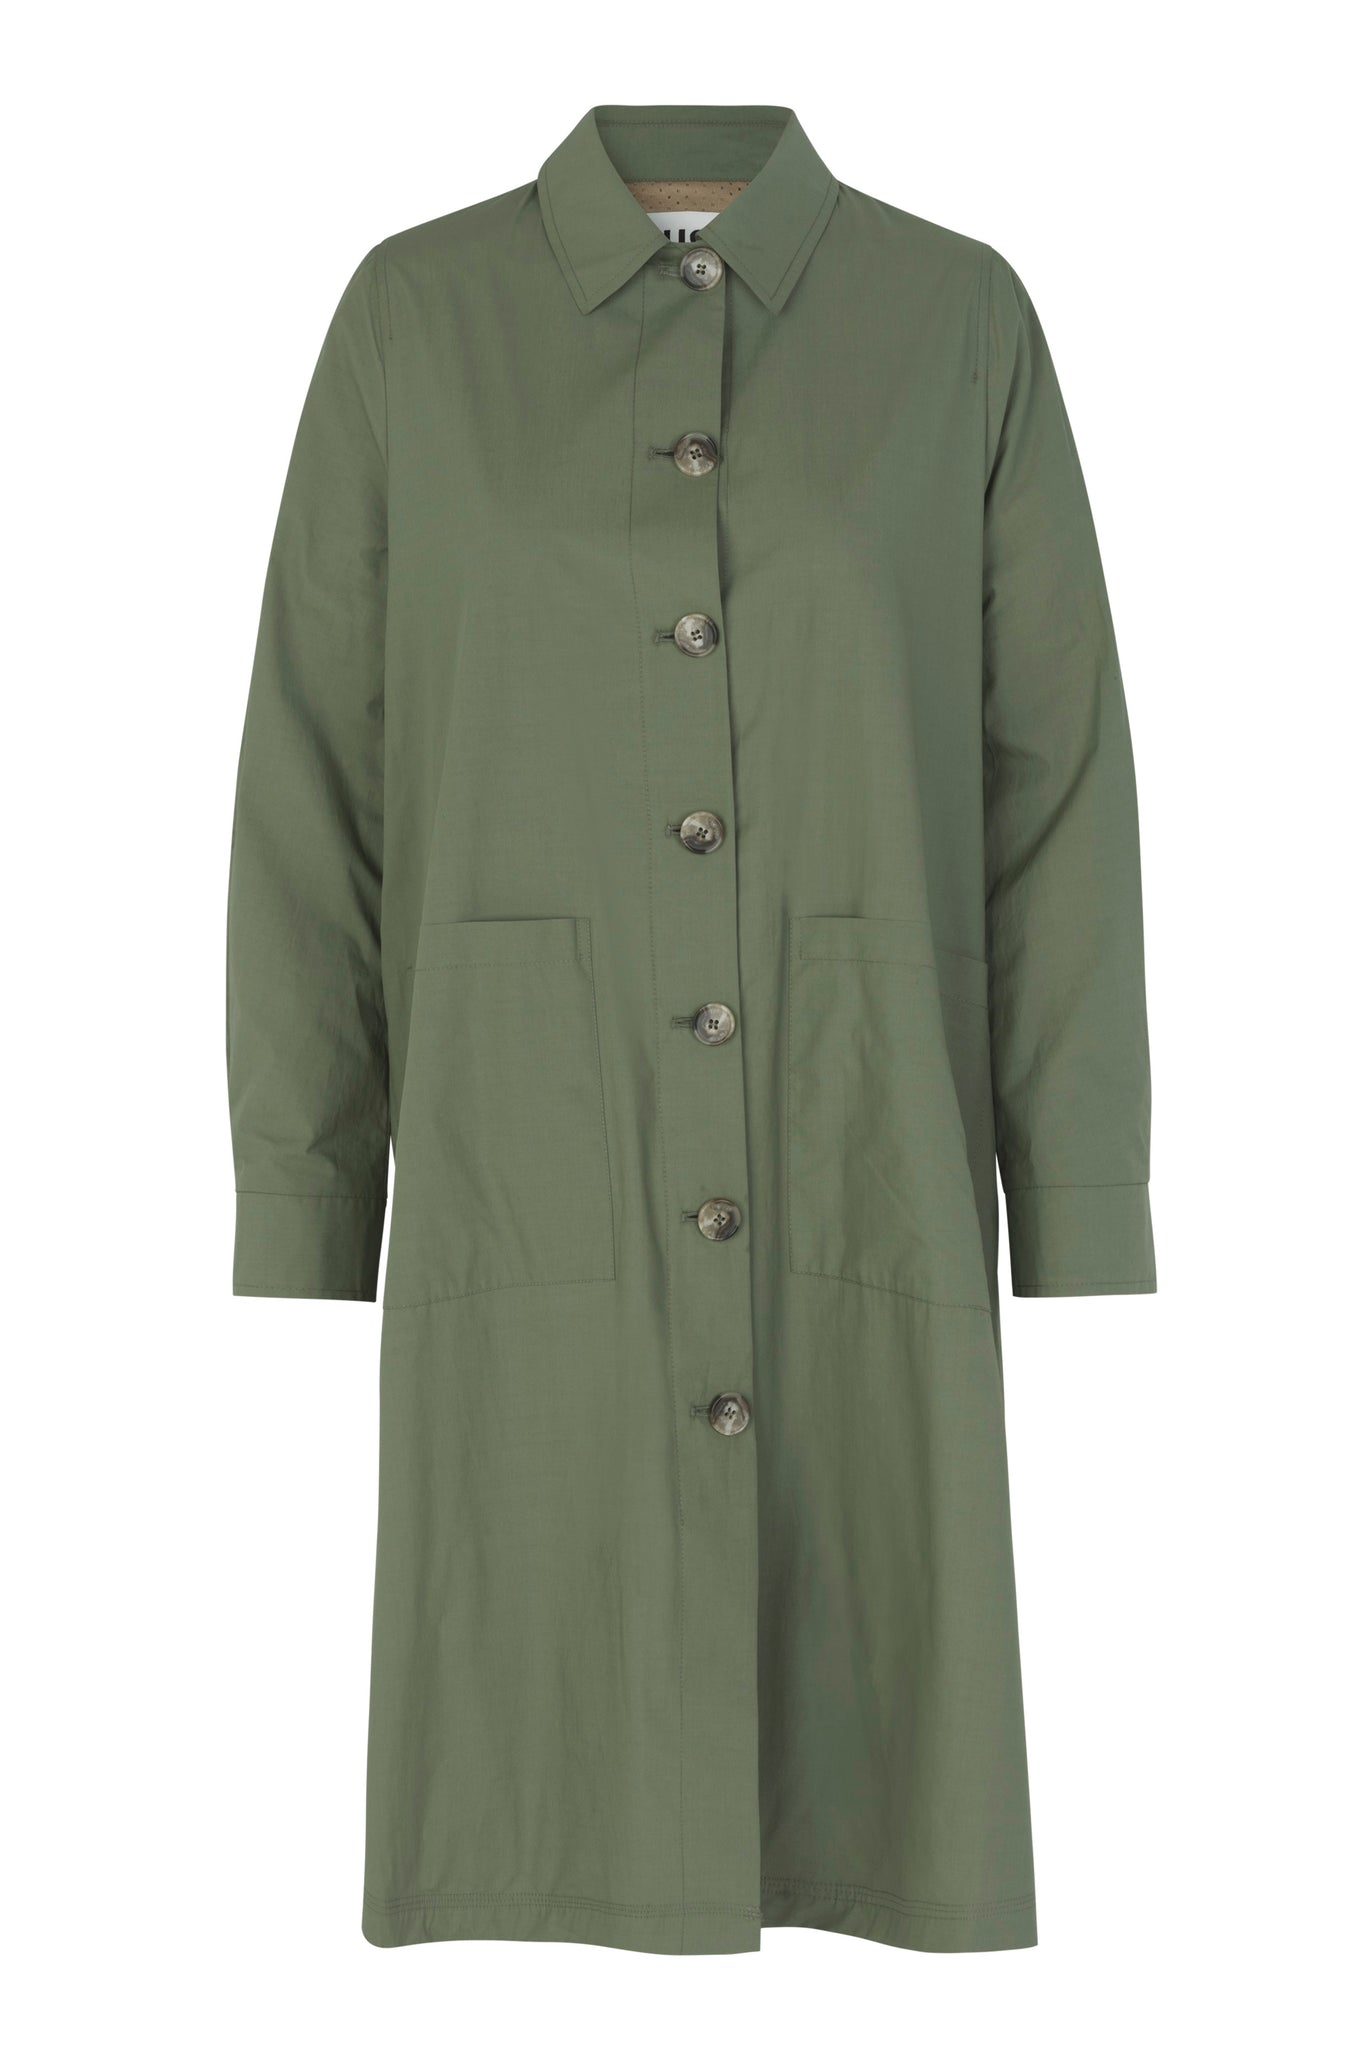 JUST FEMALE Nanita Trenchcoat, olive